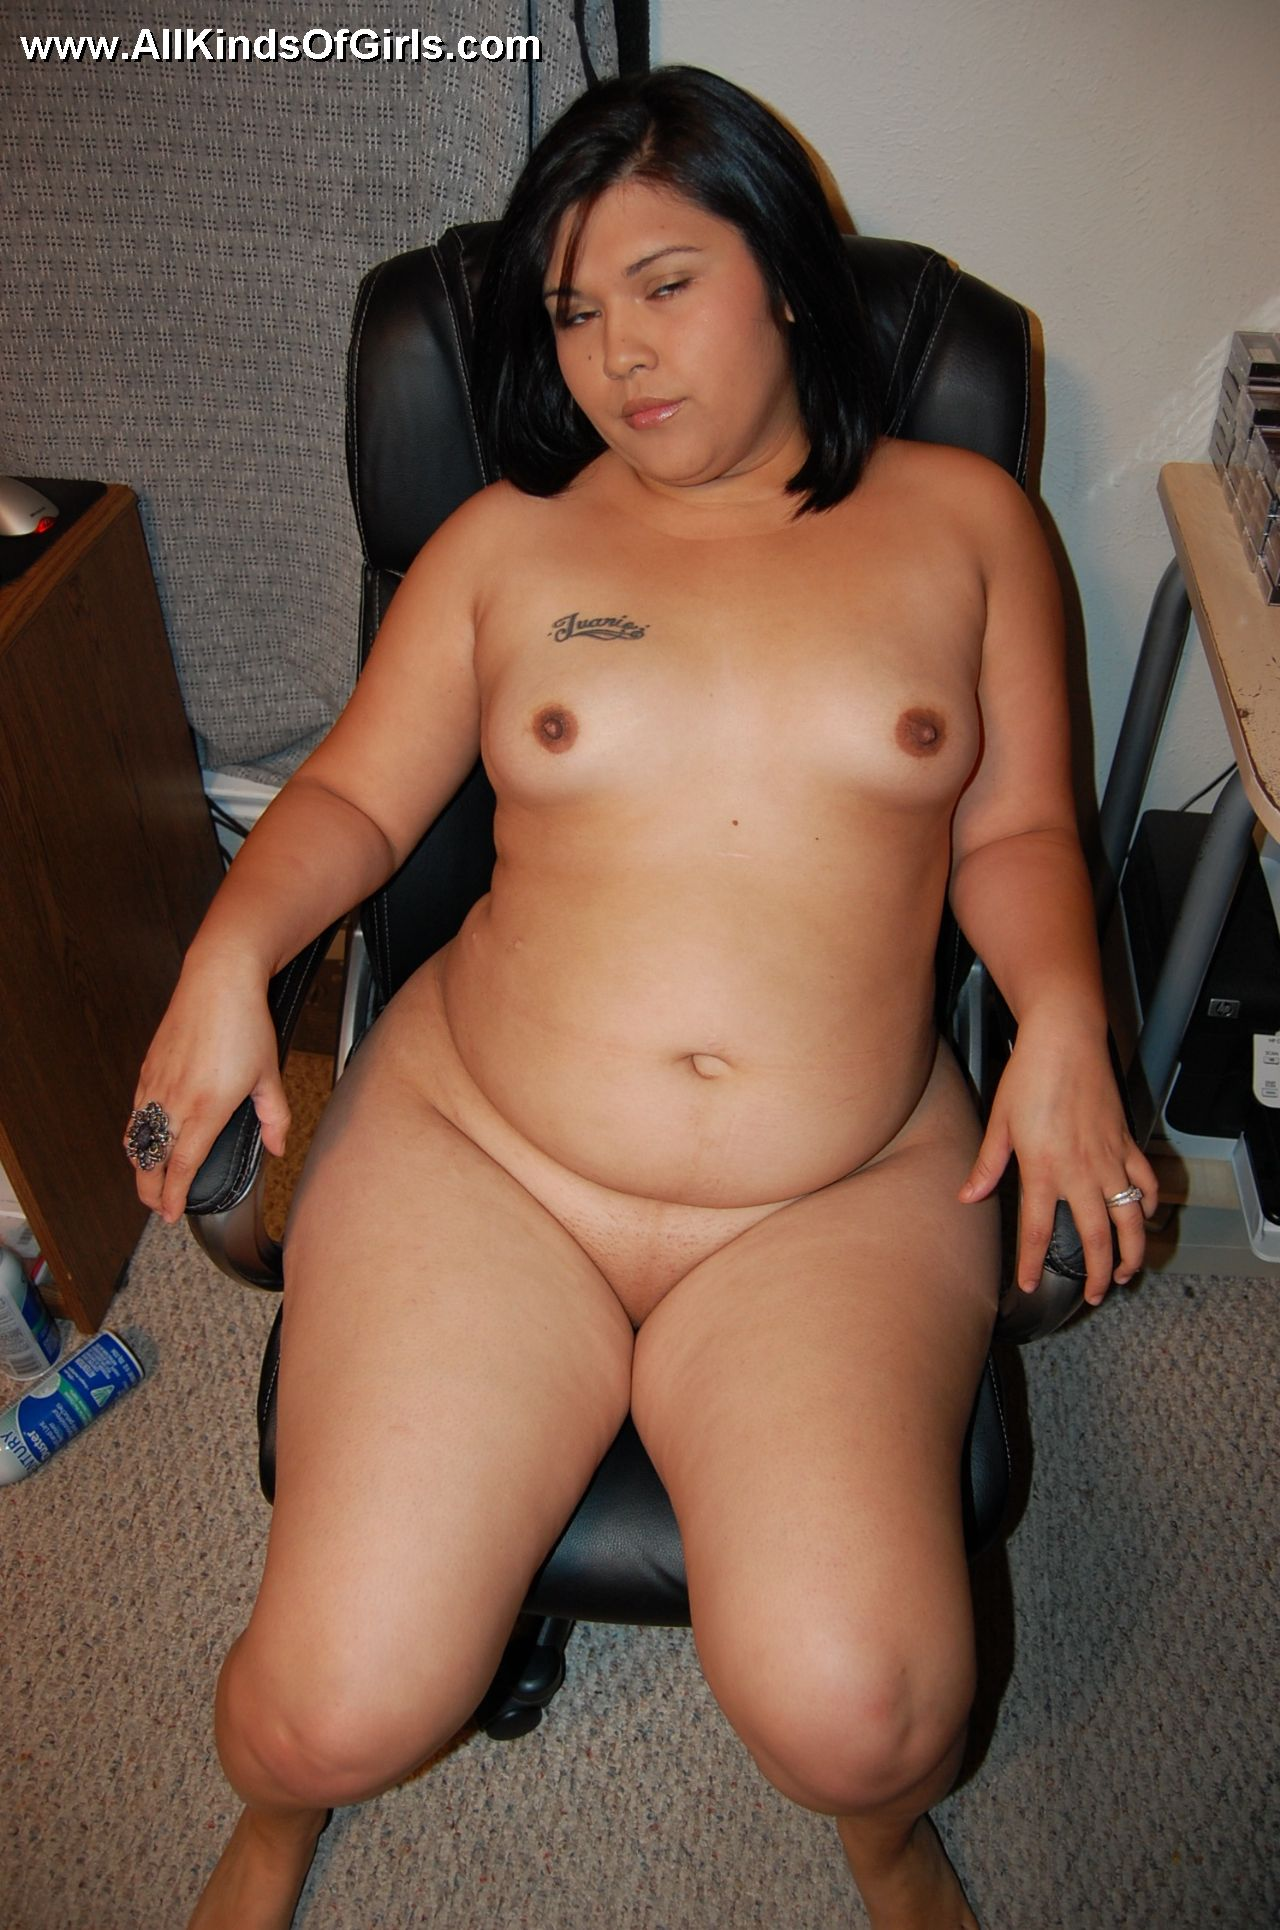 Pretty! webcam busty chubby latin